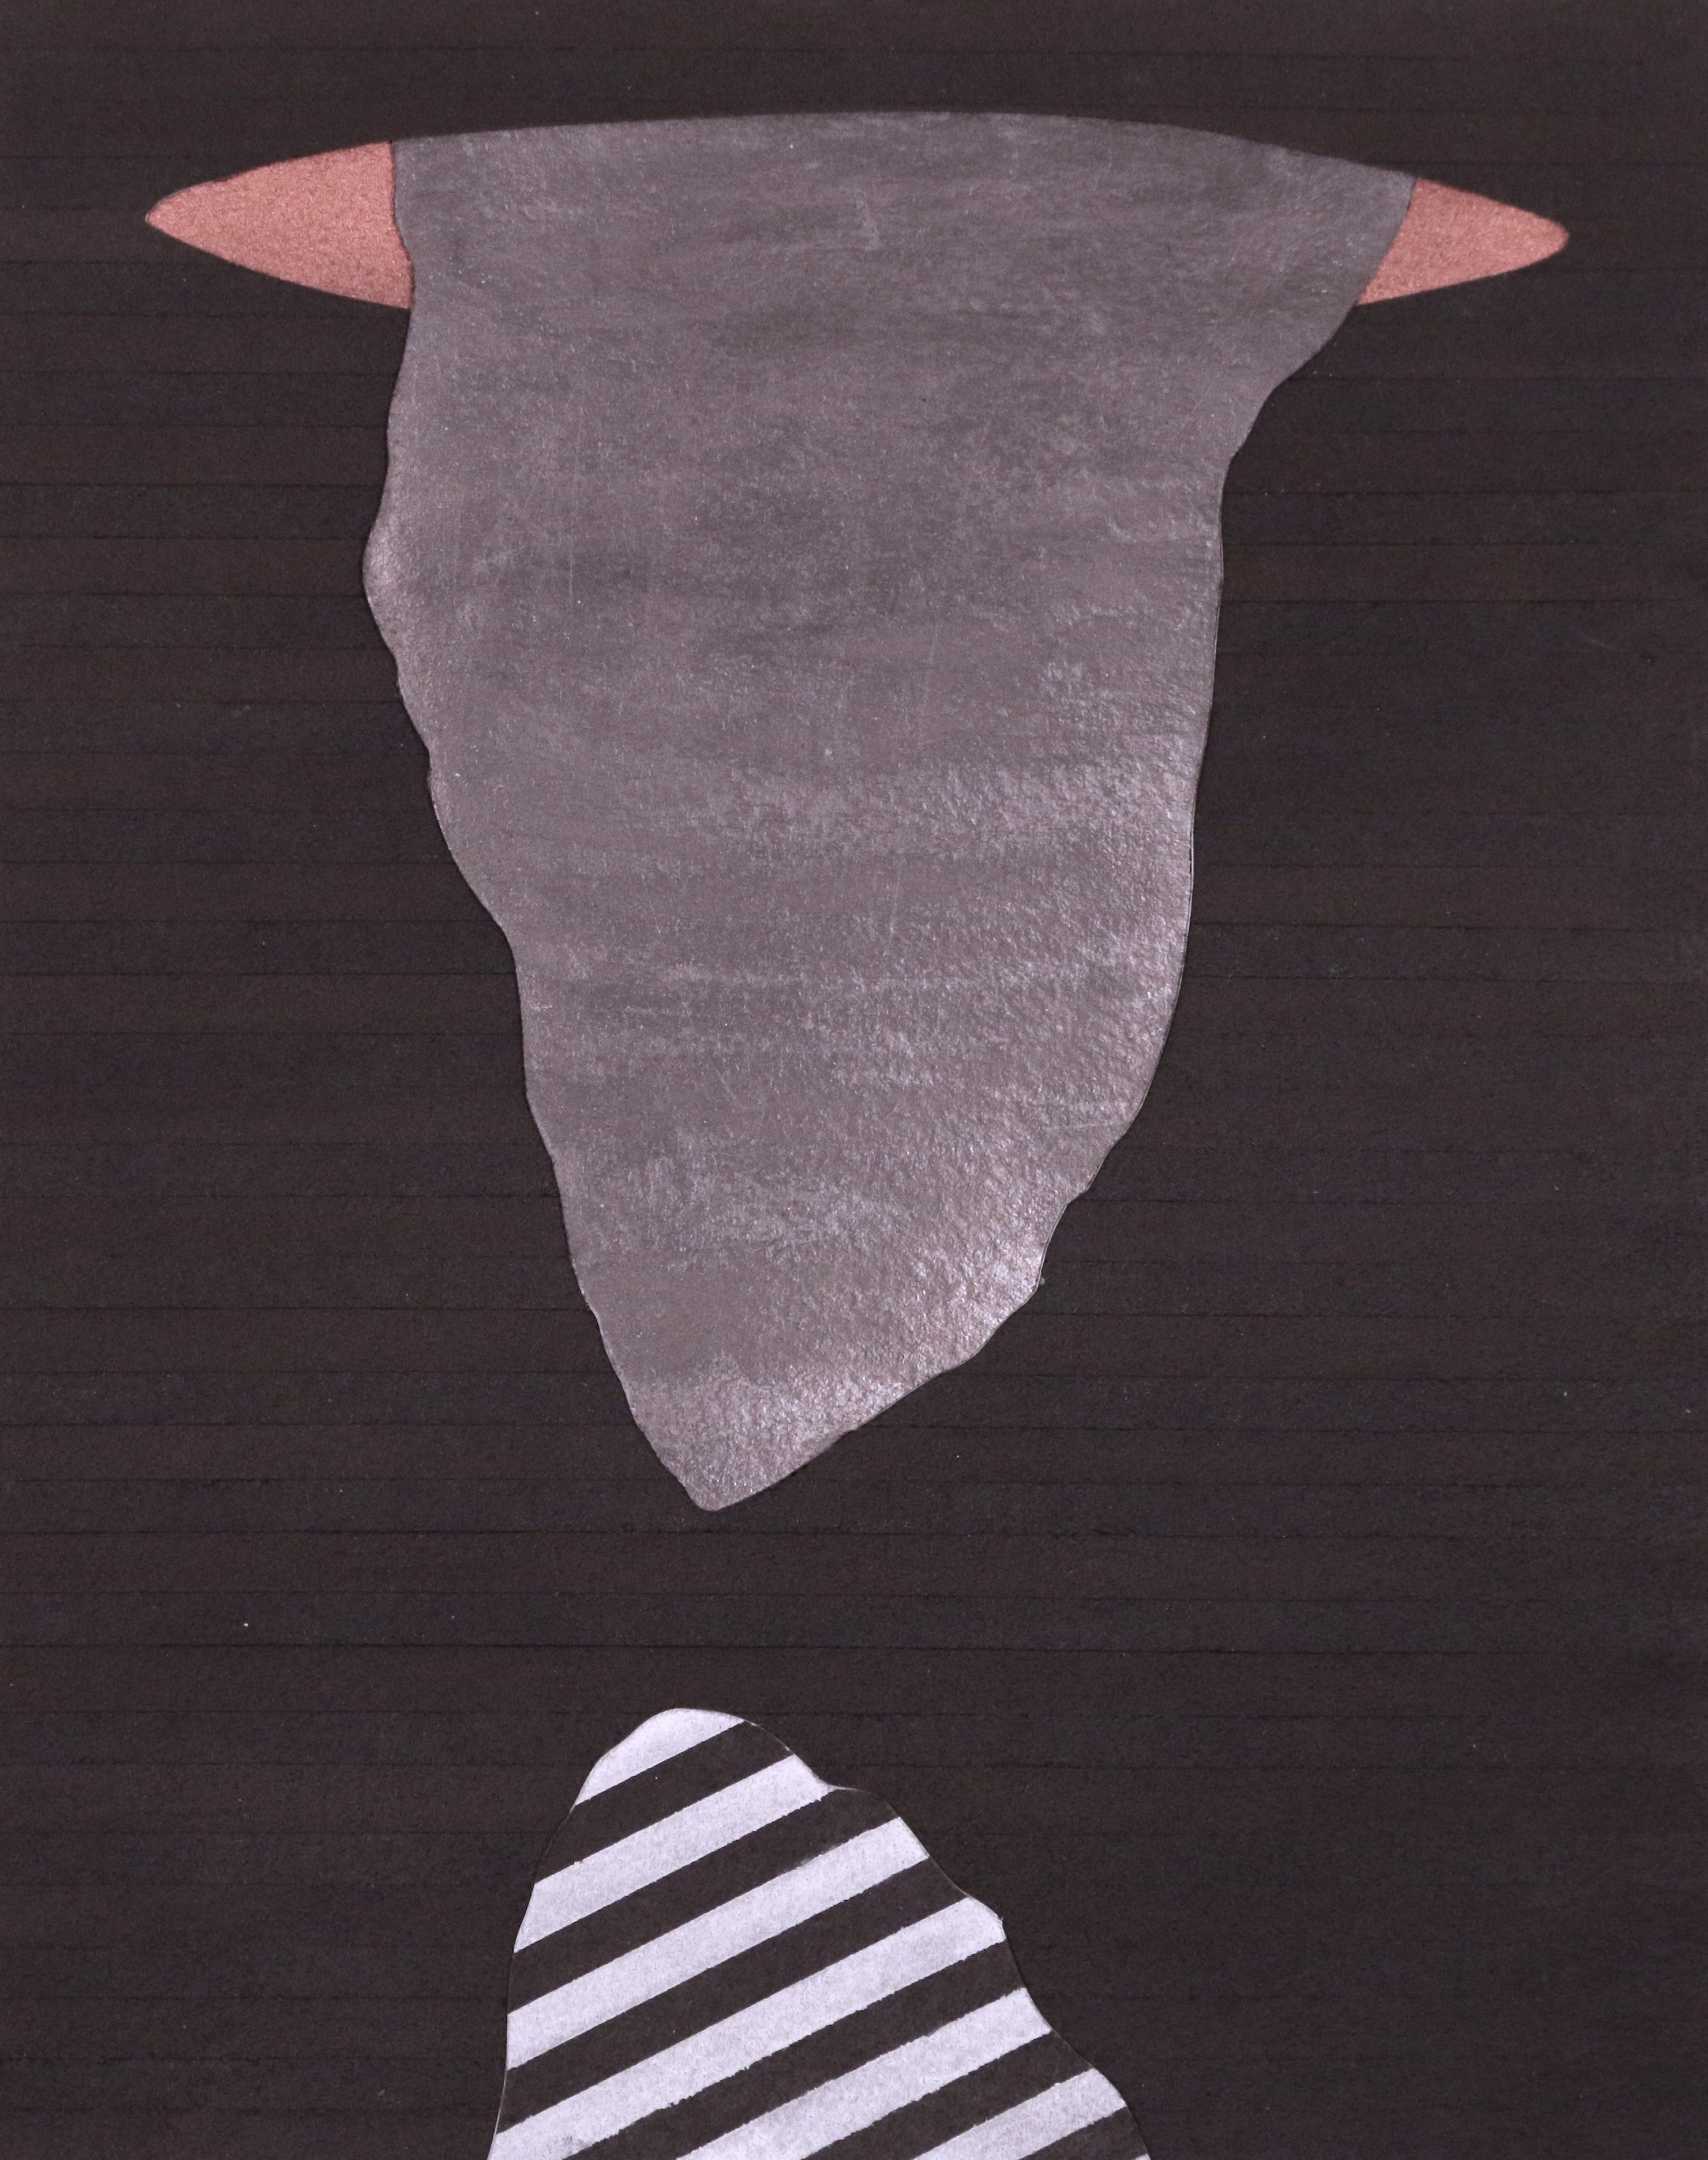 Untitled, 8''x11'', Graphite, Bronze, Gouache and Cut Paper Collage, 2014